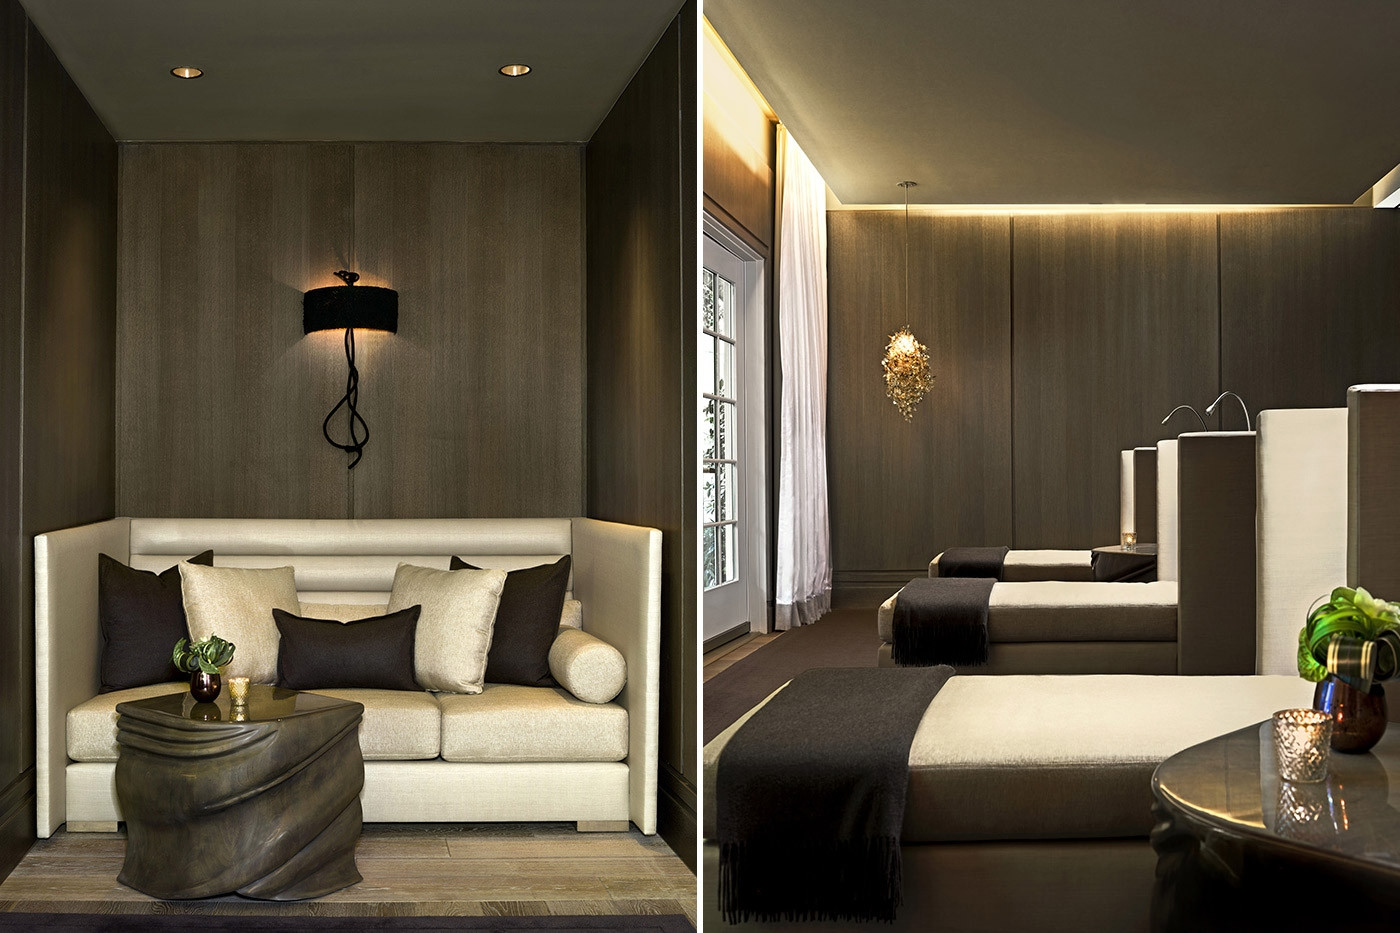 3-la-prarie-spa_hotel-bel-air_relaxation